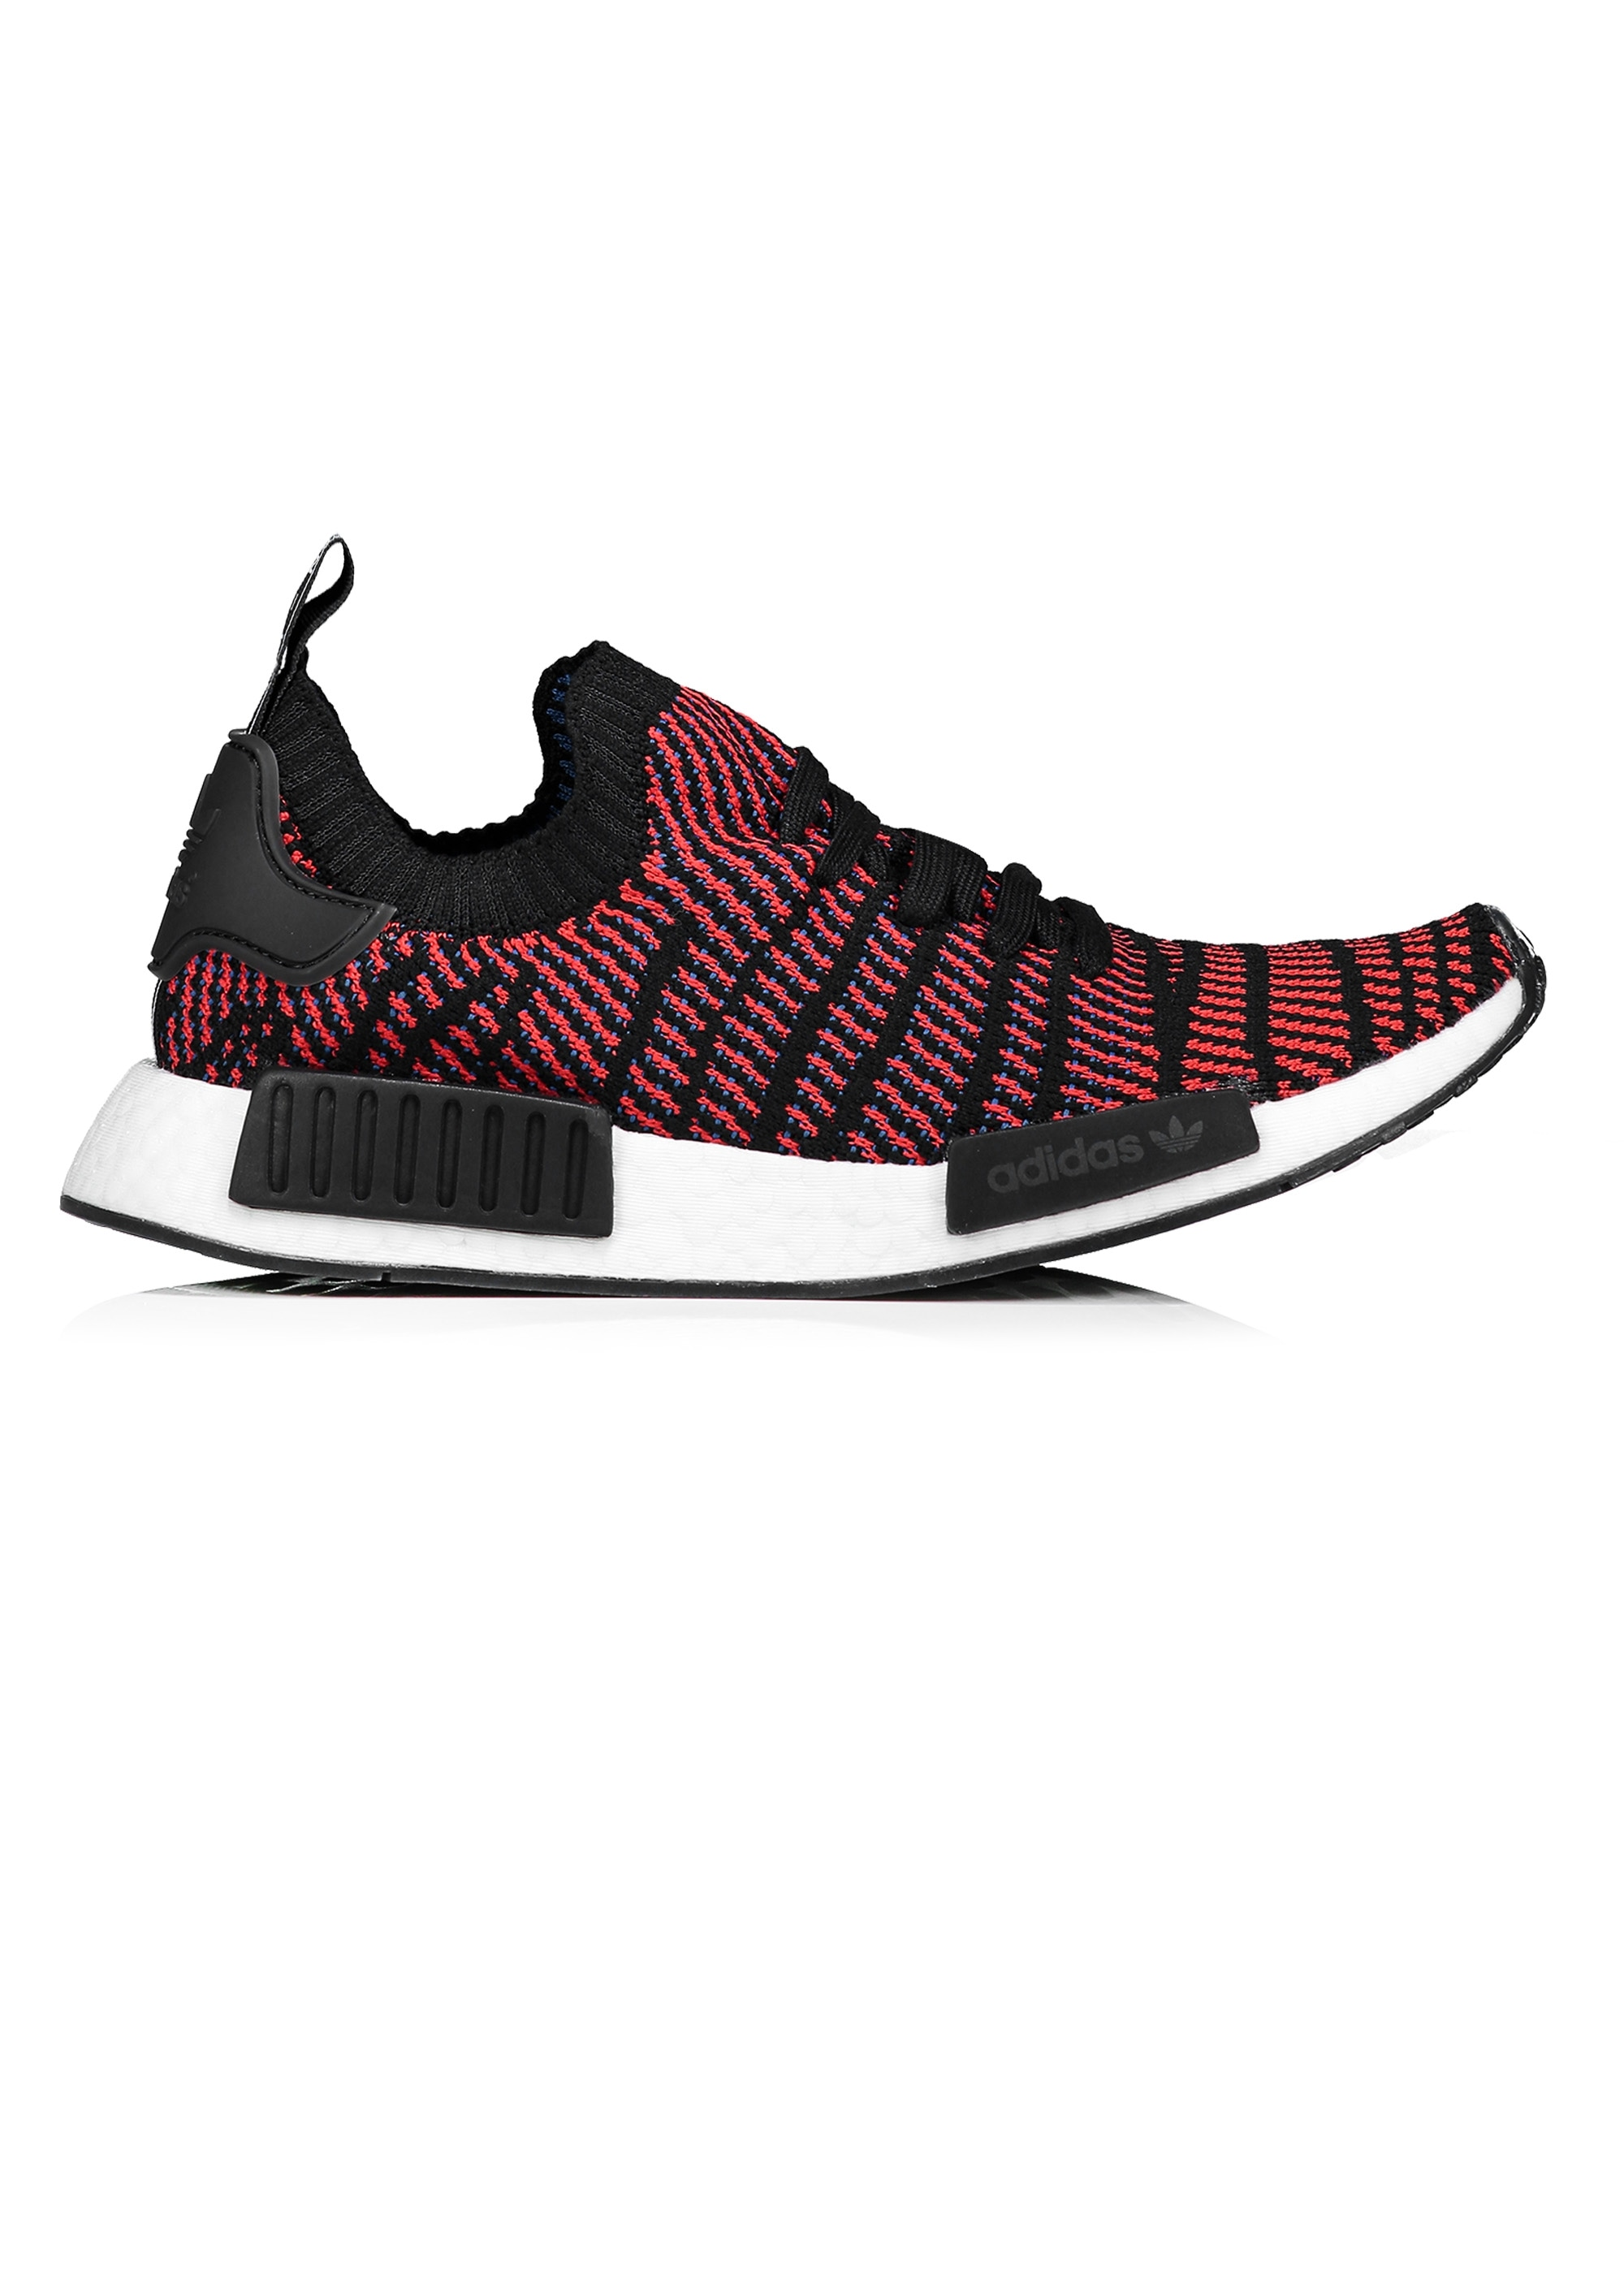 d7c0c93f82fab adidas Originals Footwear NMD R1 STLT PK - Black   Red - Triads Mens ...